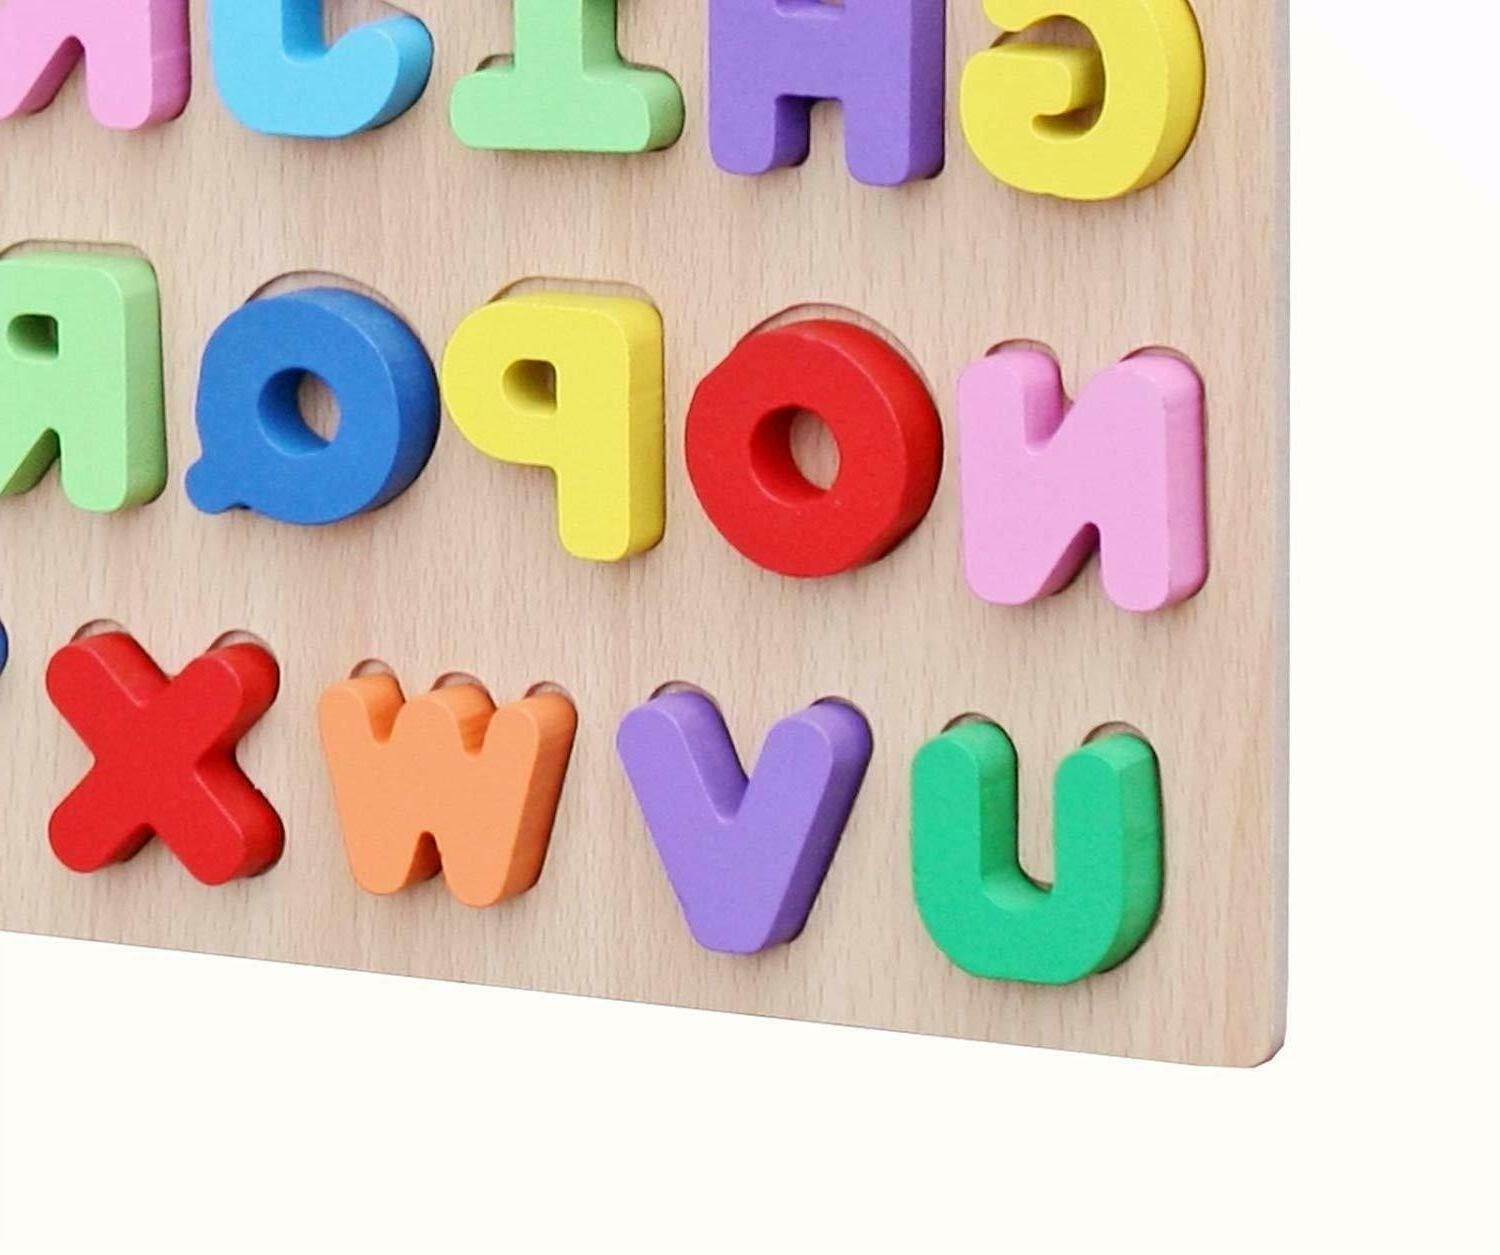 Timy Wooden Board Educational Early Learning Toys